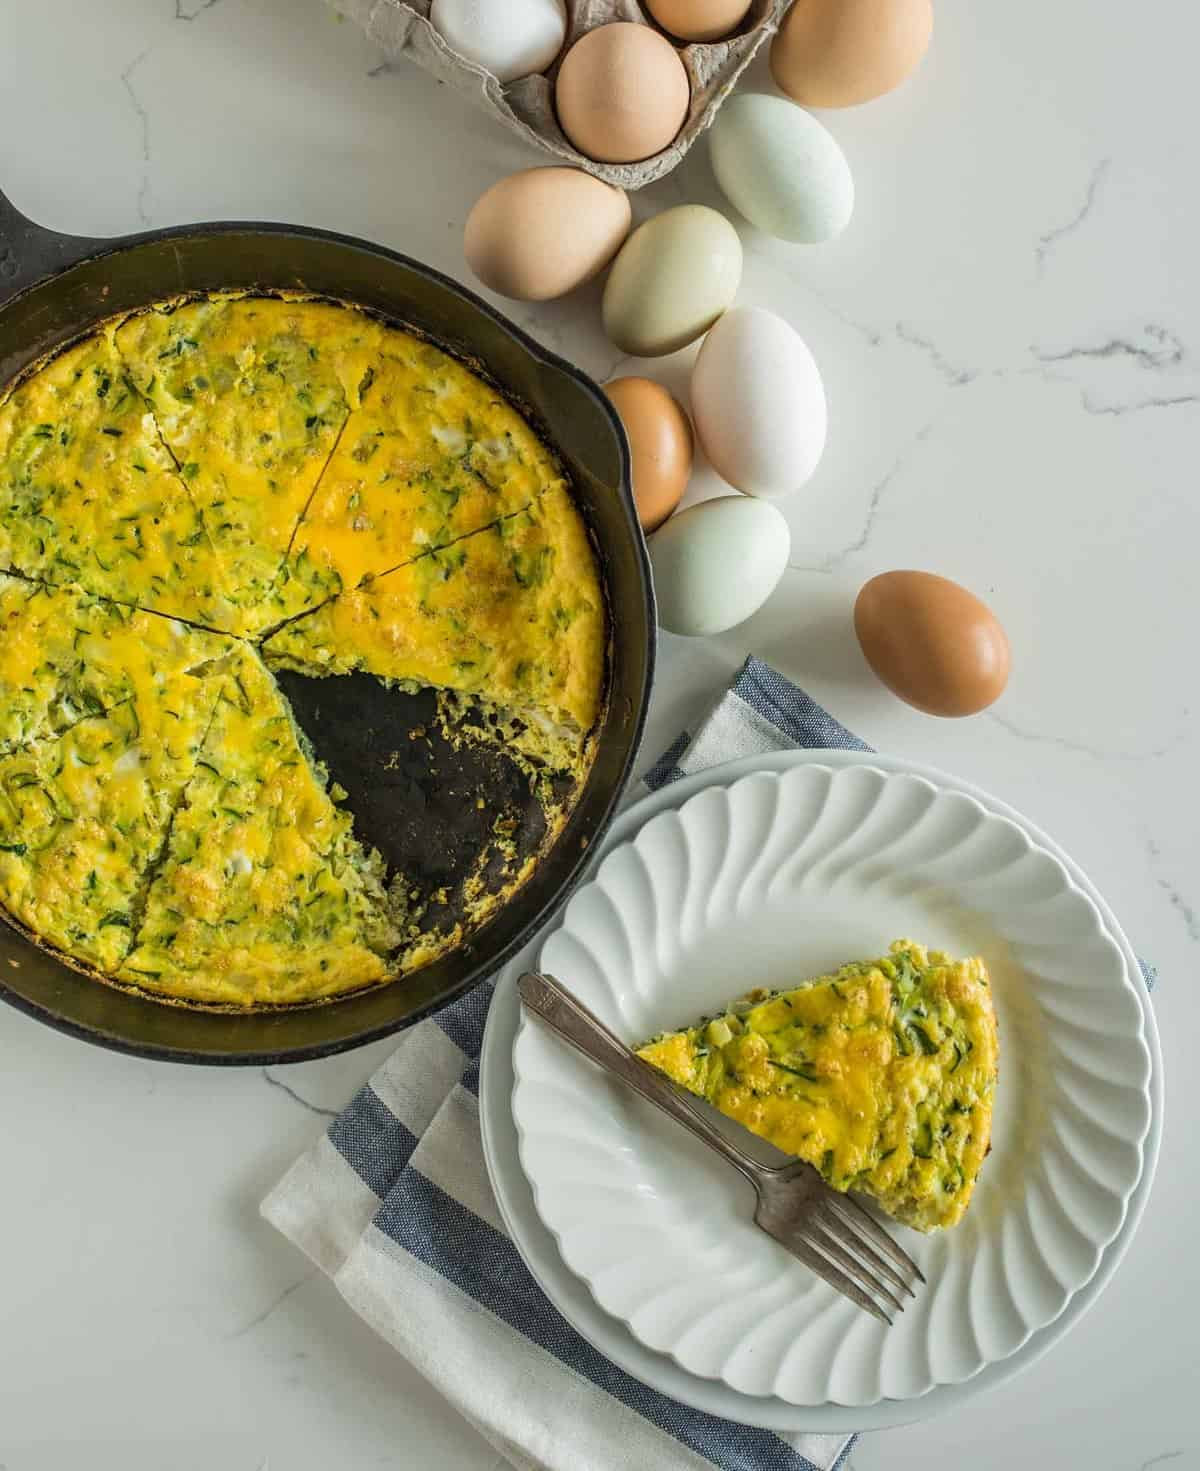 Healthy easy zucchini egg bake recipe is made with 3 ingredients, can be customized to your liking, reheats well, and is a great option to prep ahead.